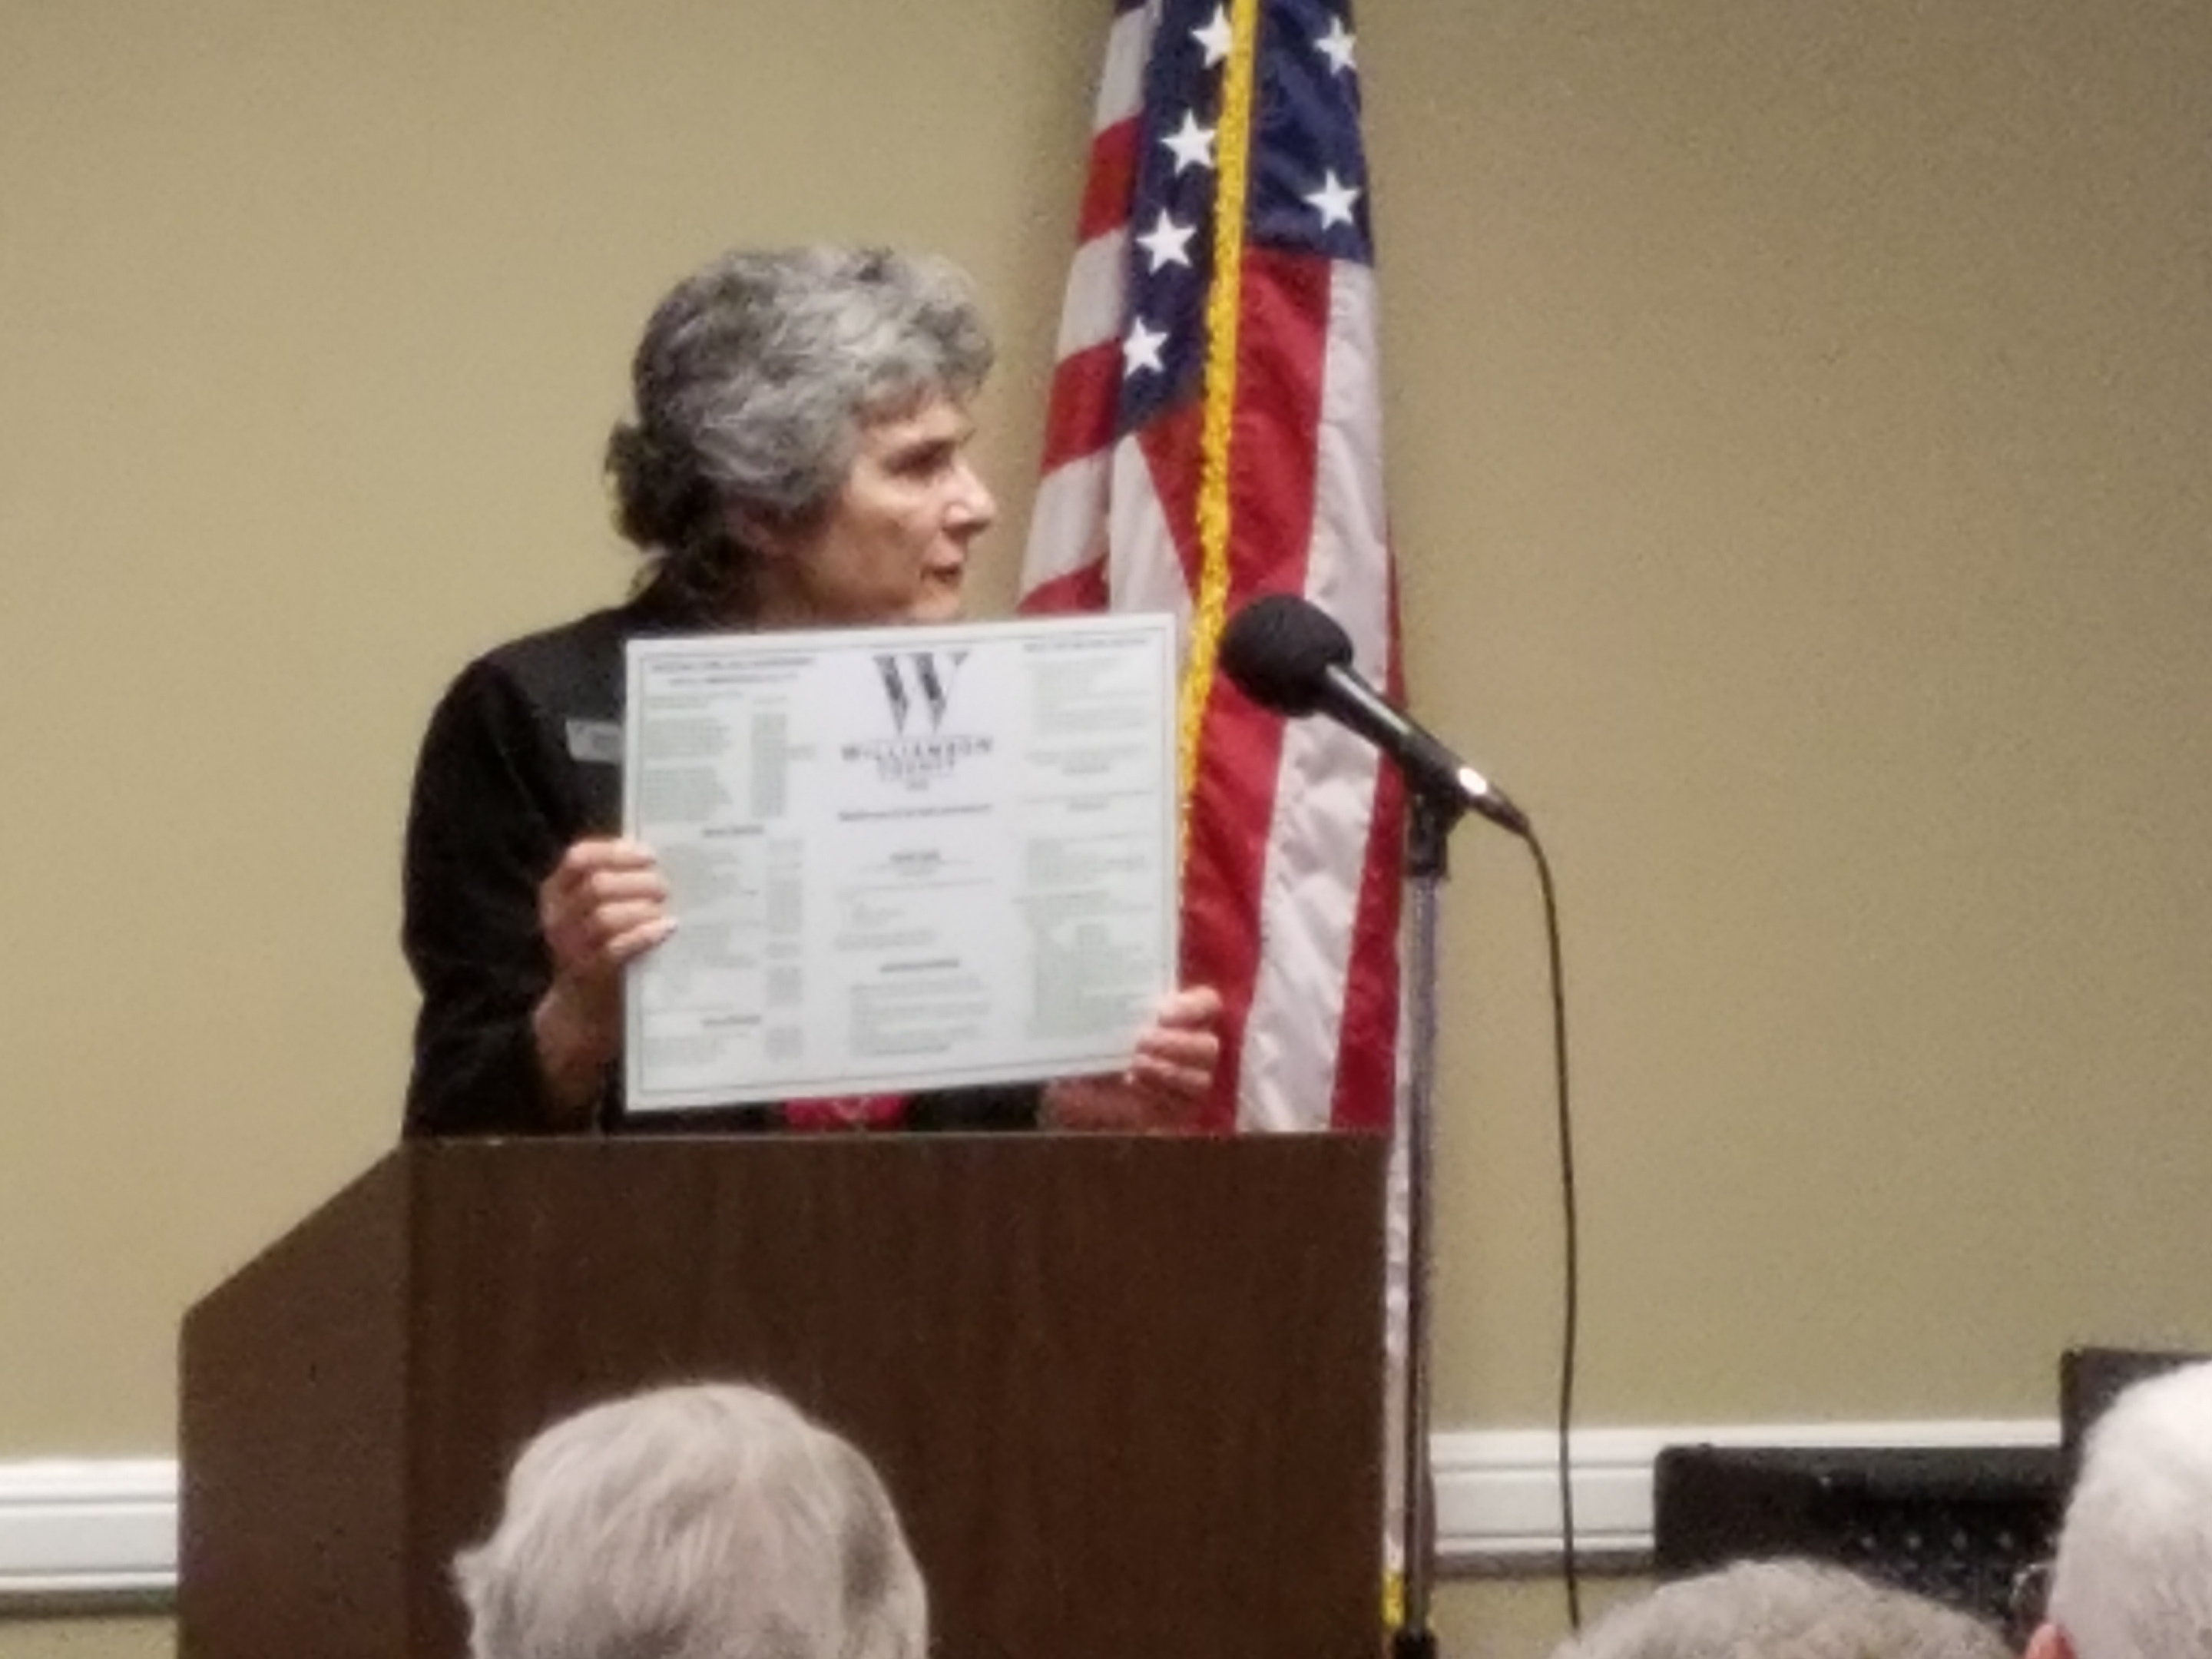 Commissioner Cook holds up the back side of a placemat standing at the podium.